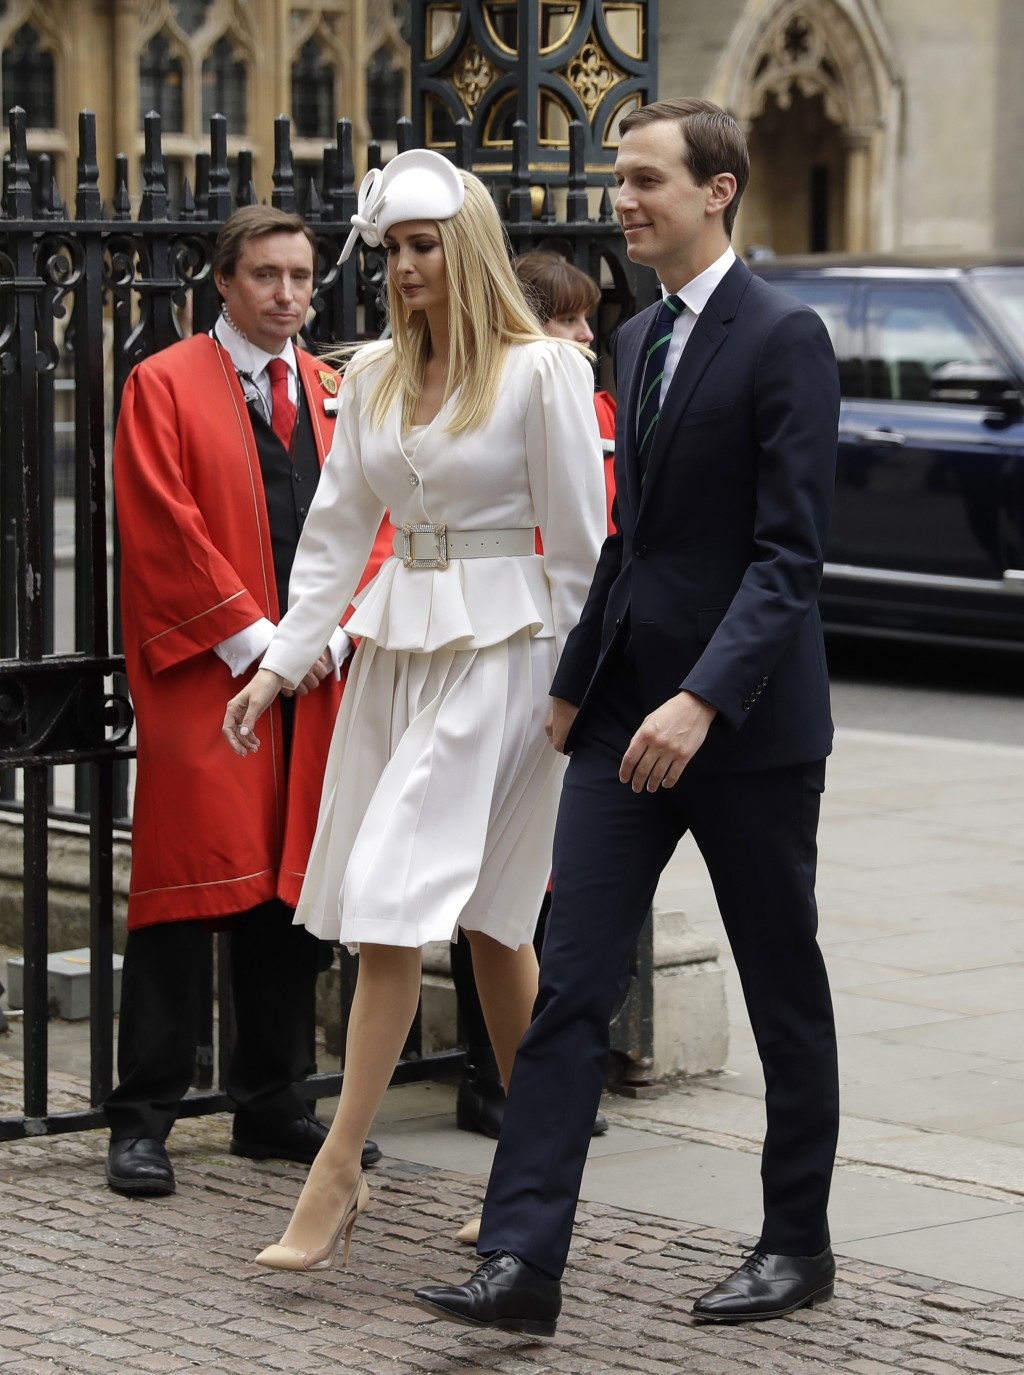 Jared Kushner, right, and Ivanka Trump arrive at Westminster Abbey in London, Monday, June 3, 2019 on the opening day of a three day state visit to Br